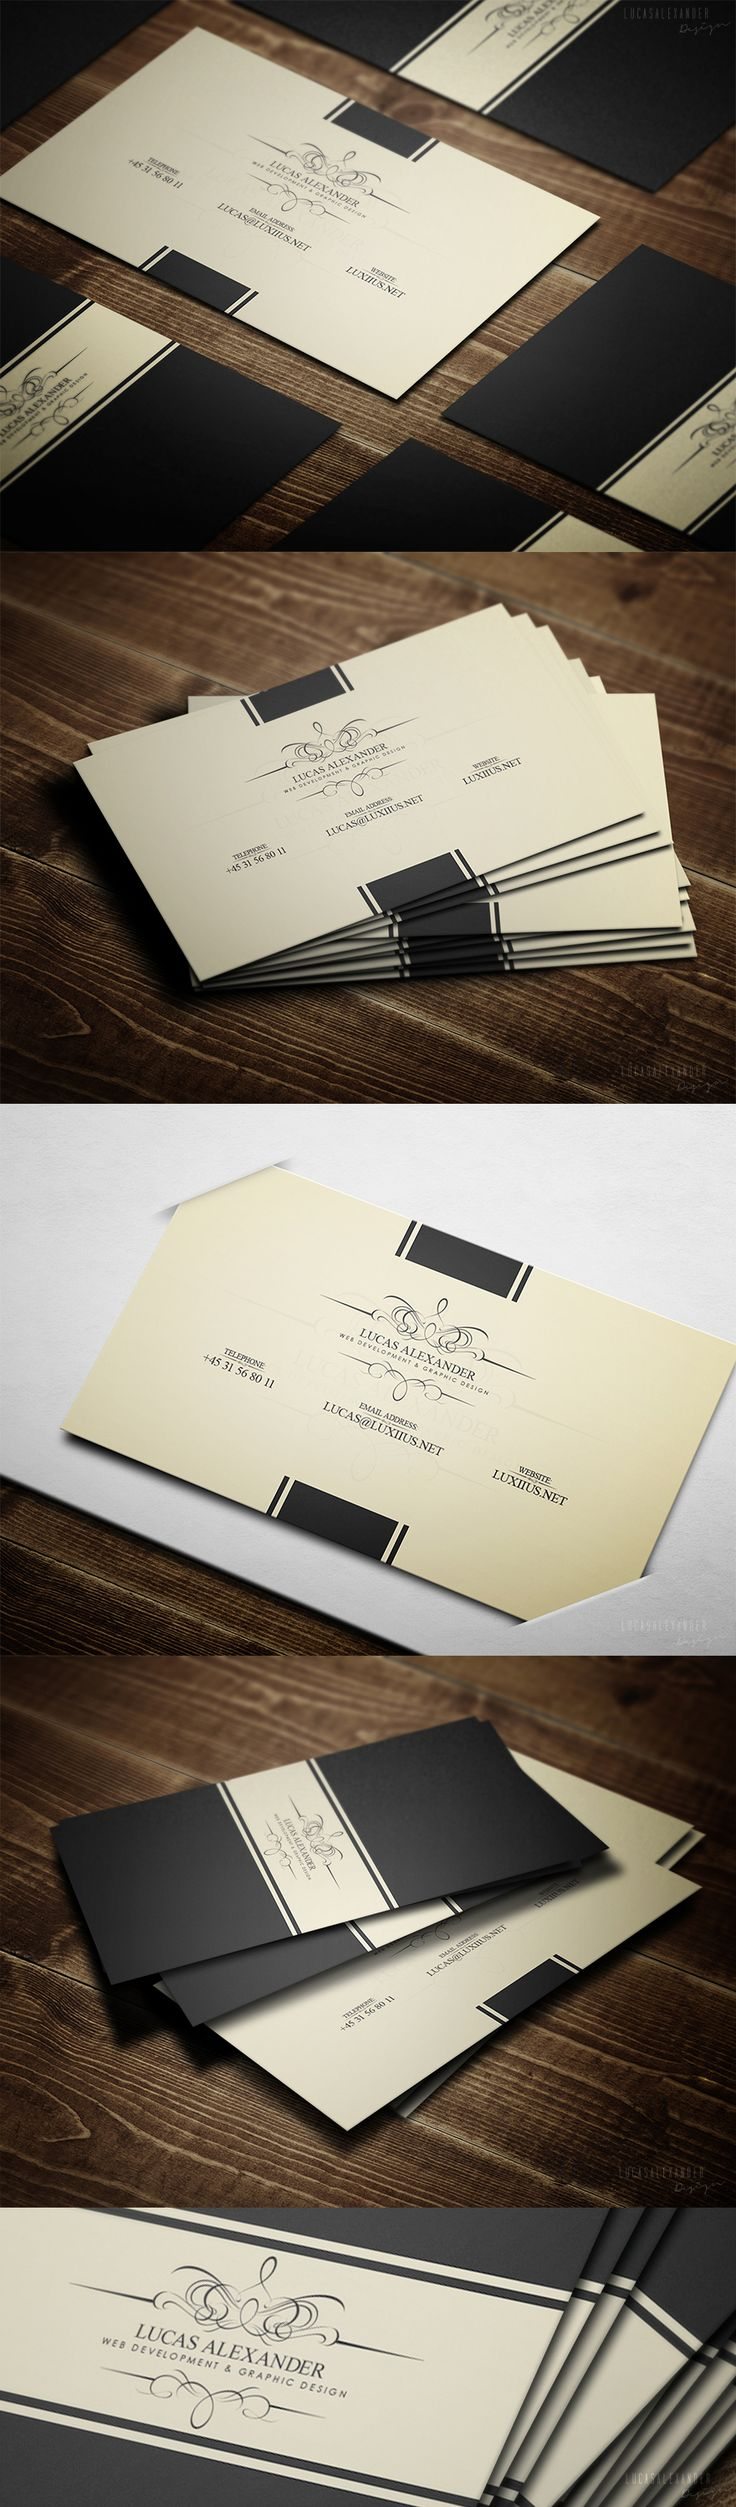 Great business cards by Lucas Alexander